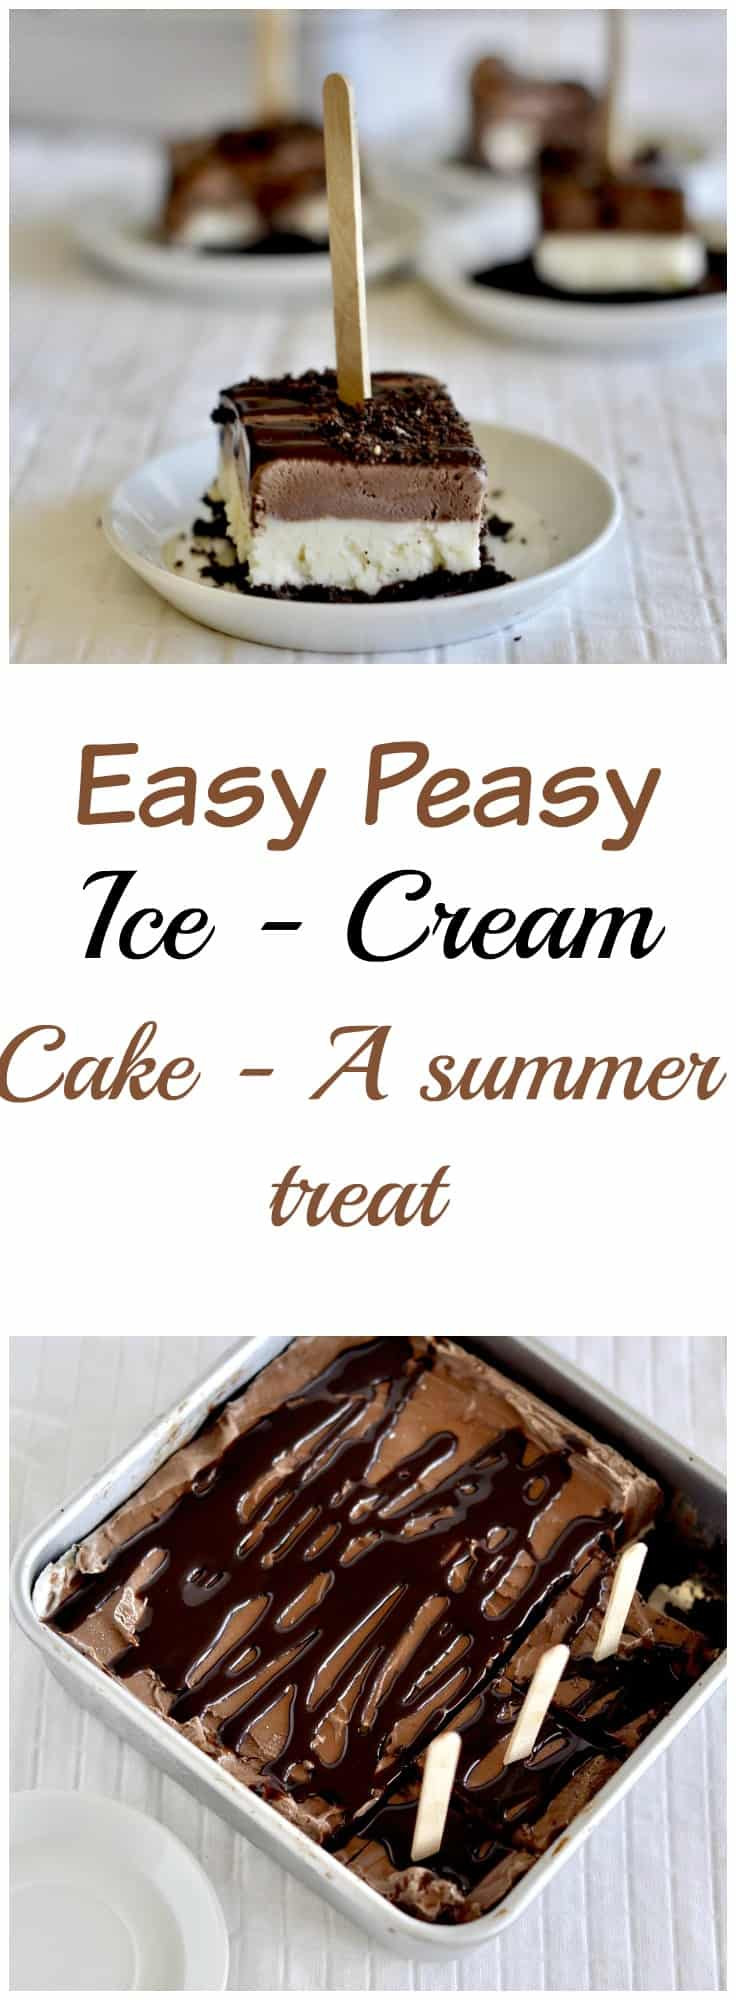 easy peasy ice cream cake summer treat cake recipe ice cream no churn easy simple photography